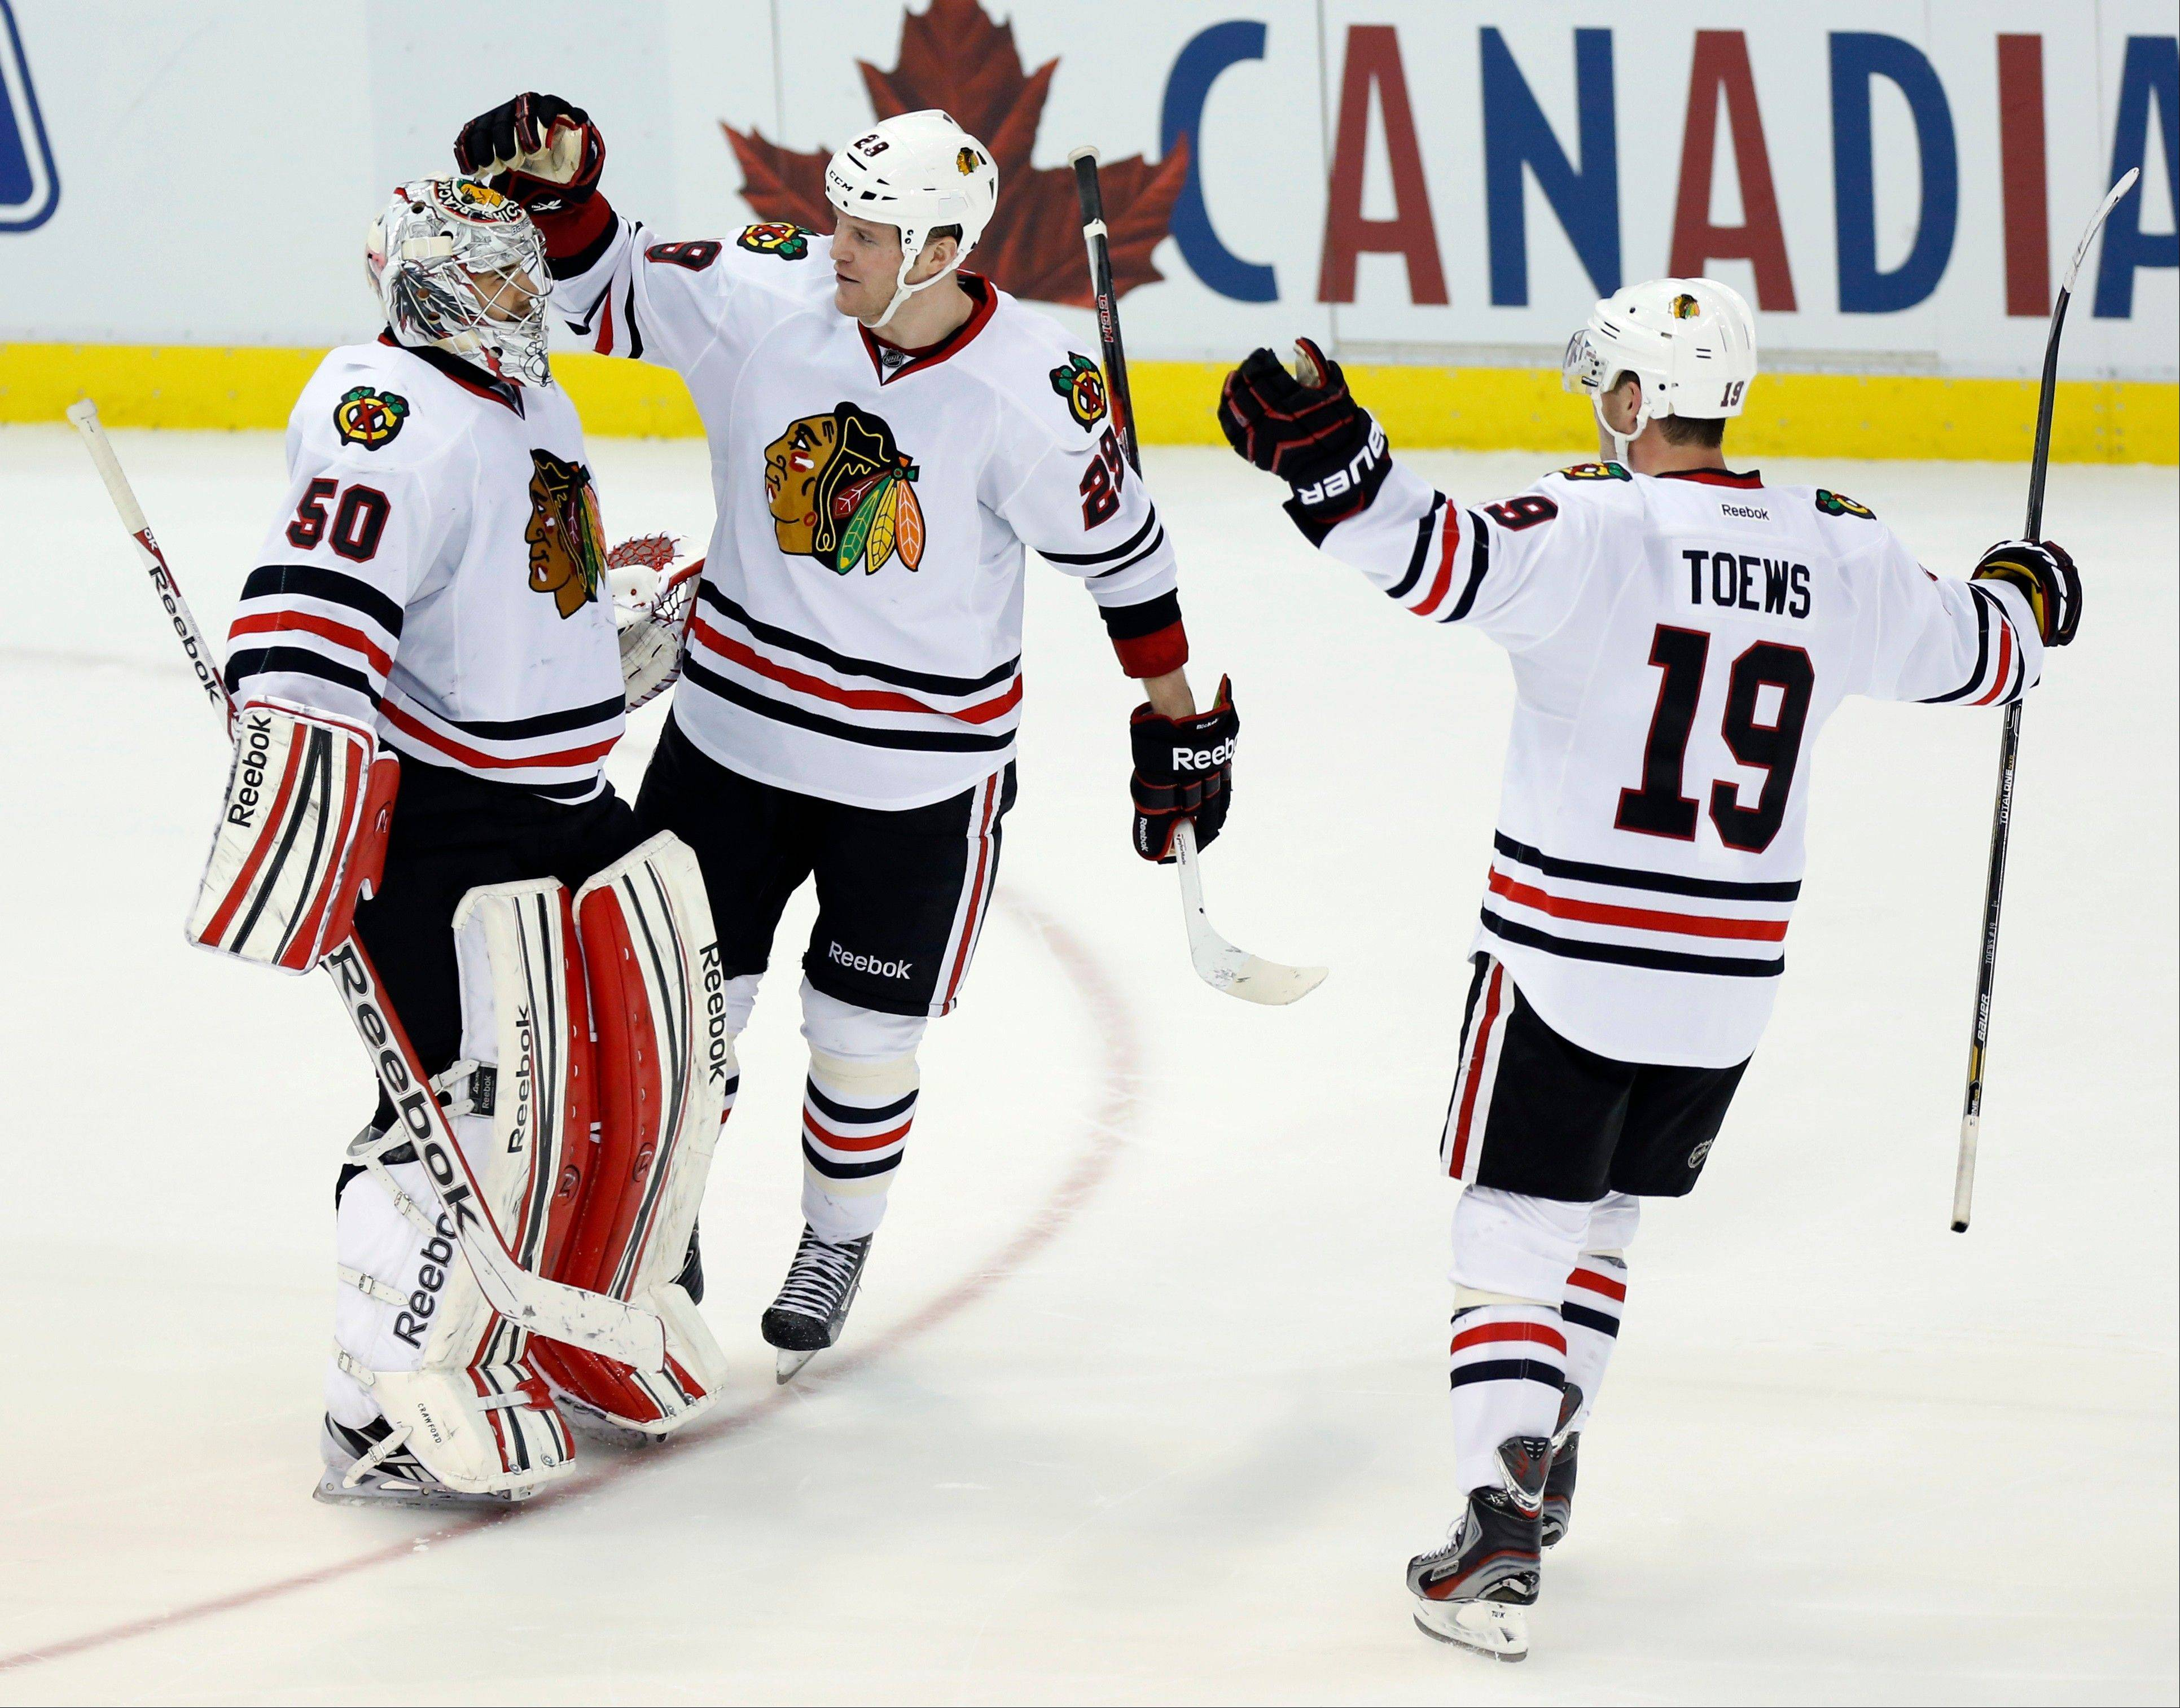 Blackhawks goalie Corey Crawford (50) is congratulated by left wing Bryan Bickell (29) and center Jonathan Toews (19) after defeating the Detroit Red Wings 2-1 in a shootout on Sunday. The Hawks will try to extend their point streak to 29 games when they take on Minnesota.